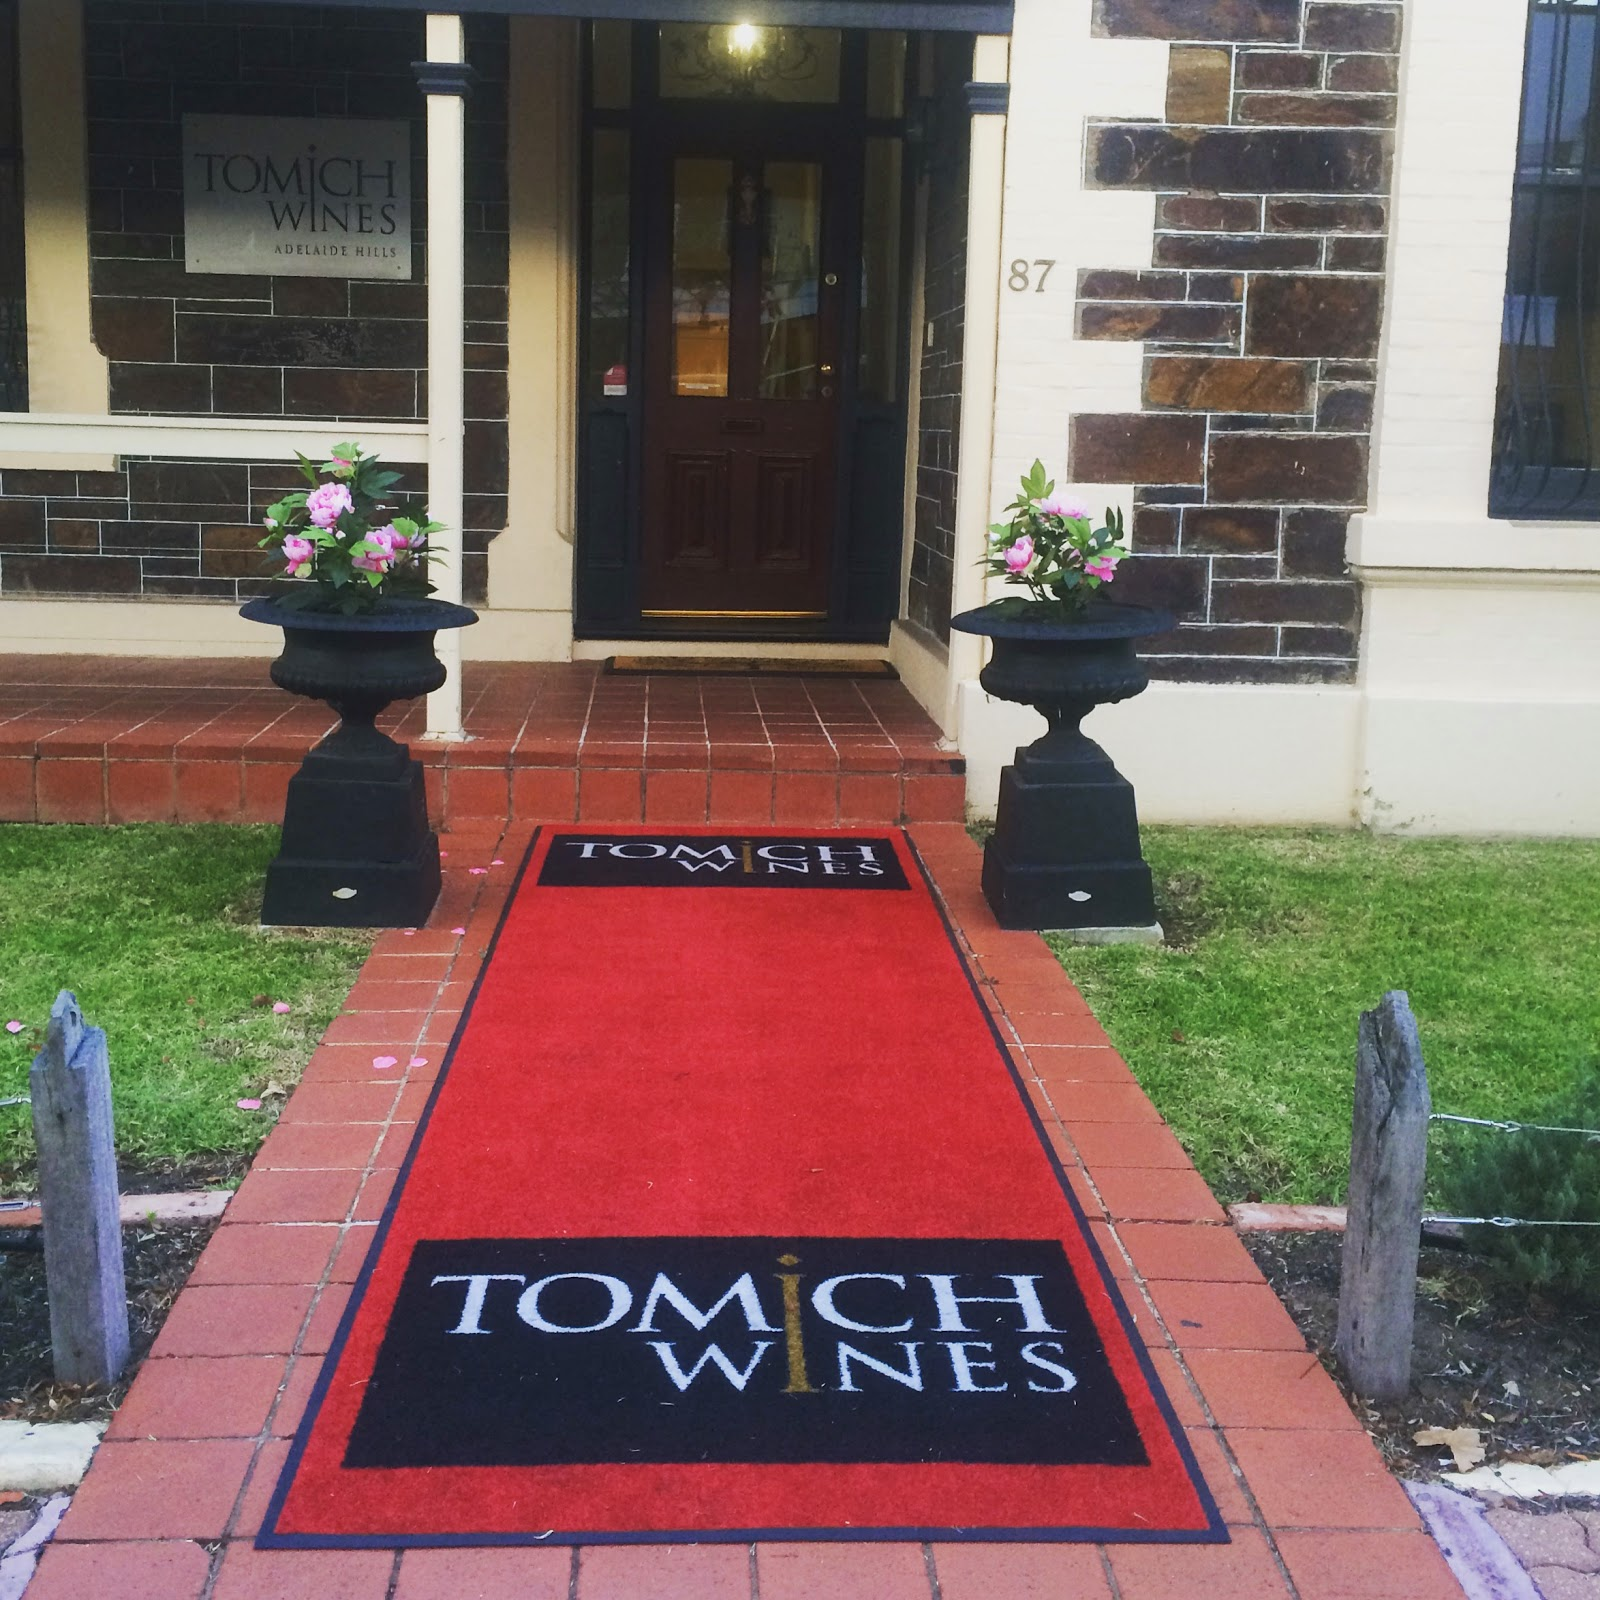 Tomich Wines, Unley cellar door